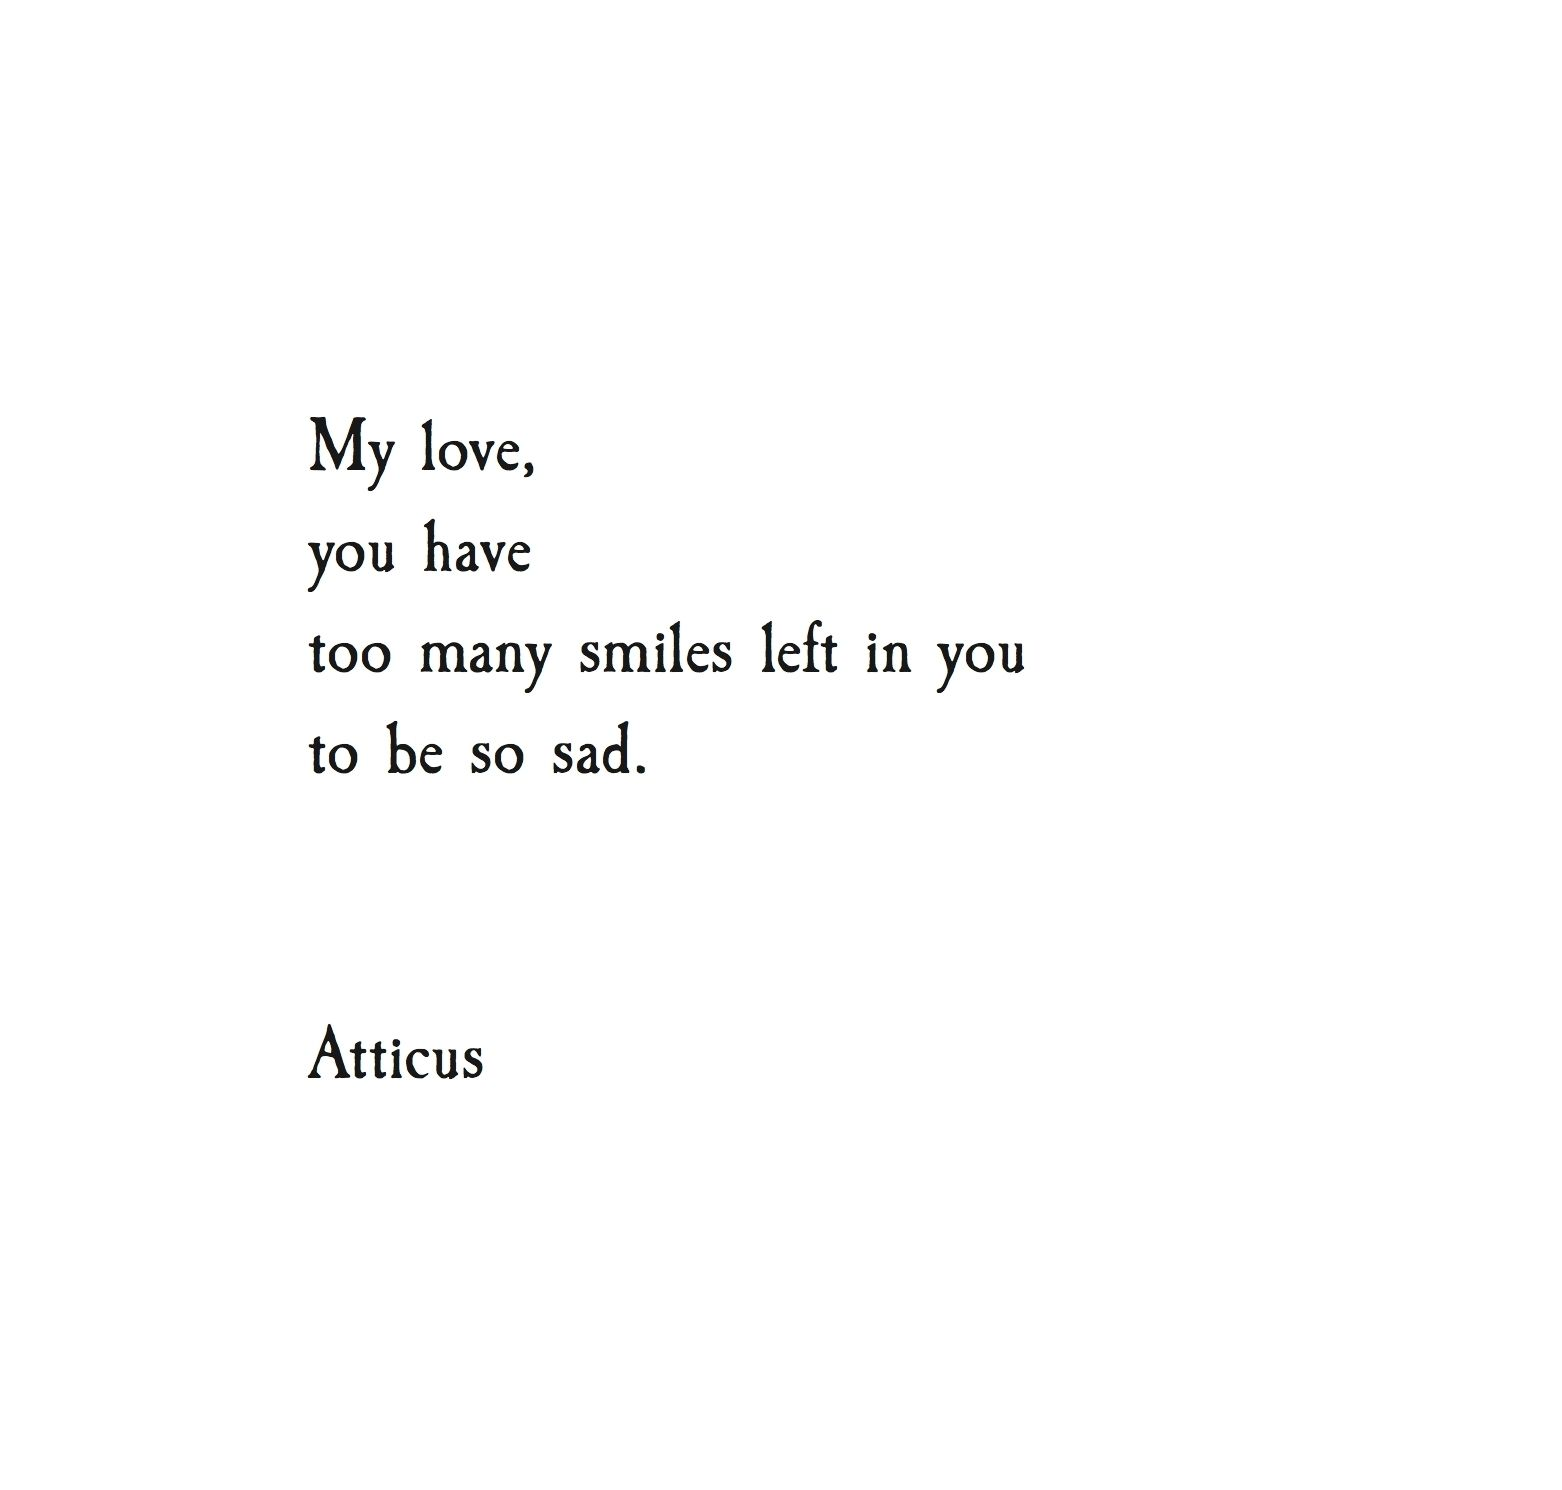 Love Of My Life Quotes For Her Pinterest Idaliax0✨  W O R D S  Pinterest  Poem Thoughts